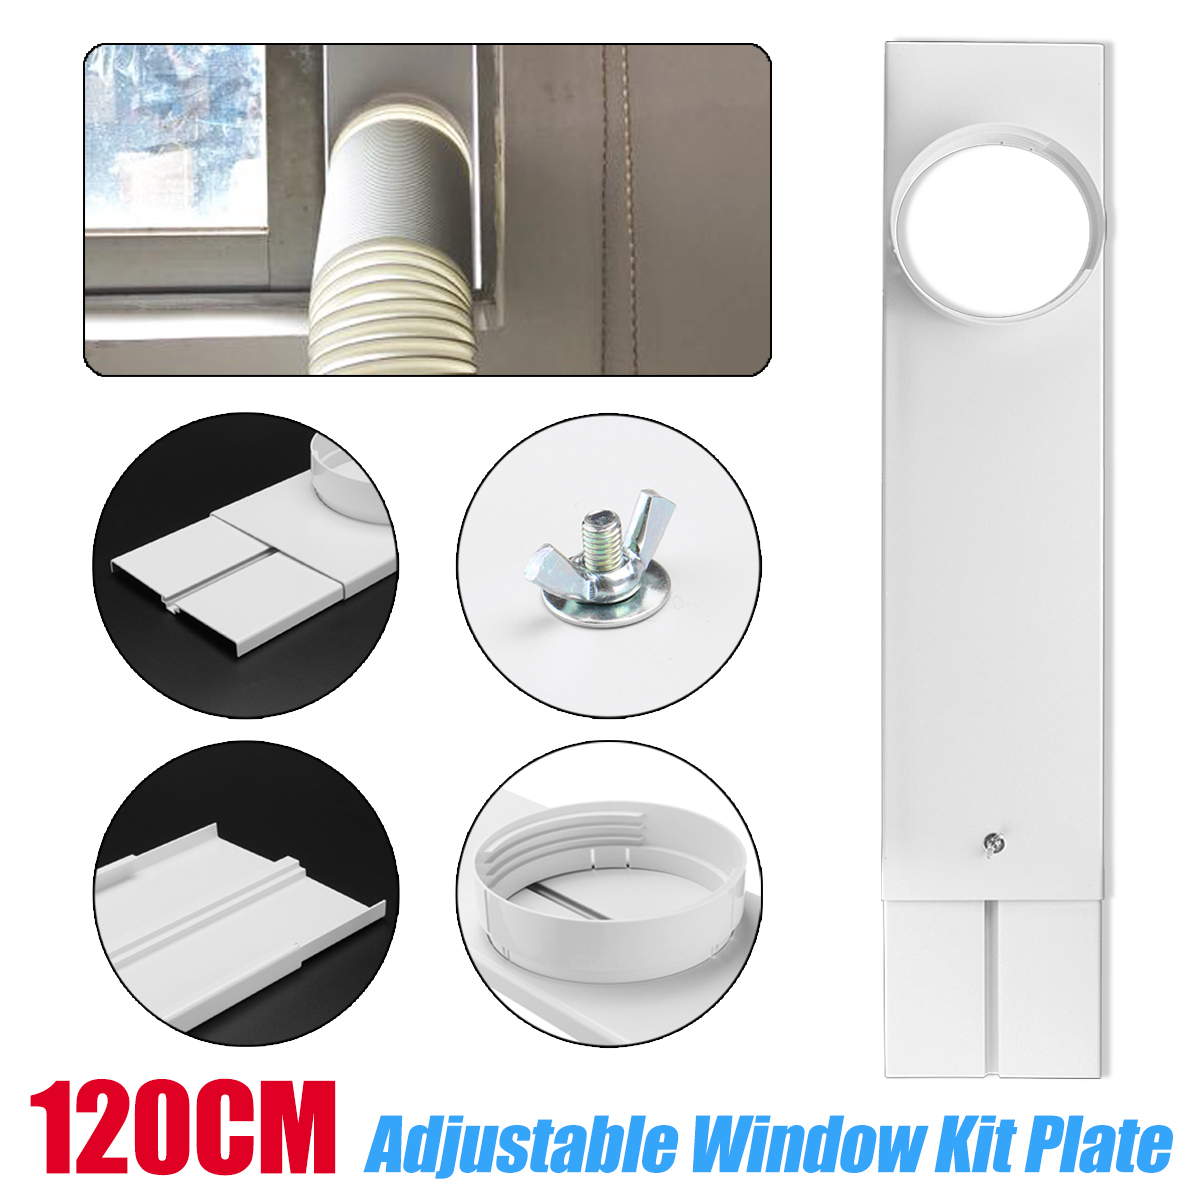 120cm Exhaust Hose/Tube Connector Adjustable Window Kit Plate For Portable Air Conditioner Window Kit Plate120cm Exhaust Hose/Tube Connector Adjustable Window Kit Plate For Portable Air Conditioner Window Kit Plate